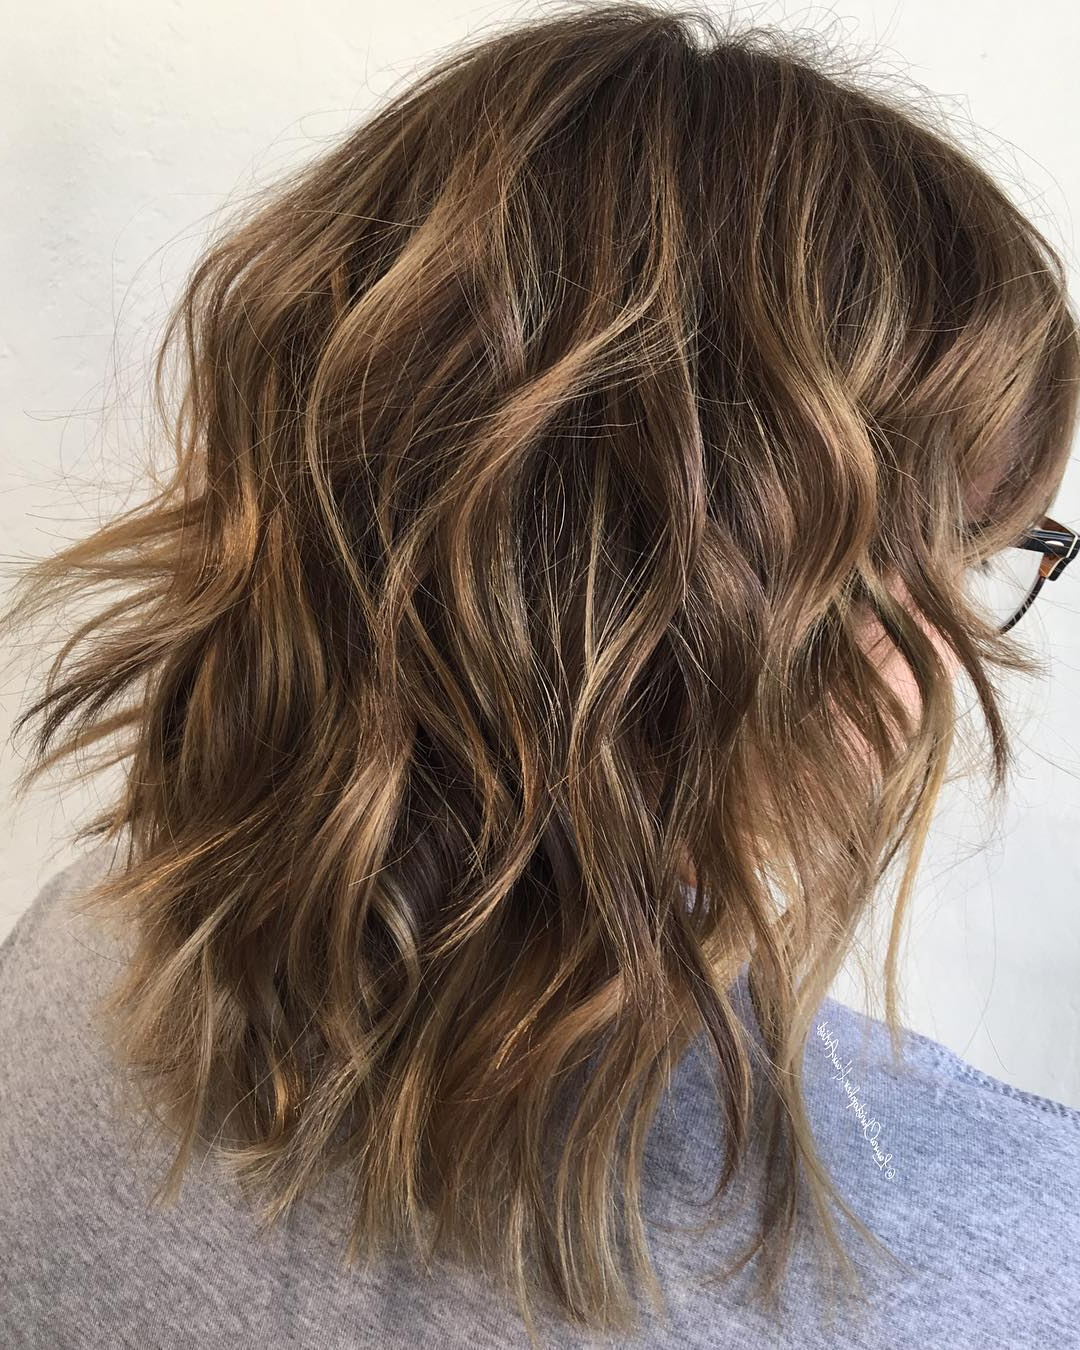 125 Coolest Shag Haircuts For All Ages – Prochronism Throughout Long Razored Shag Haircuts With Balayage (View 3 of 20)